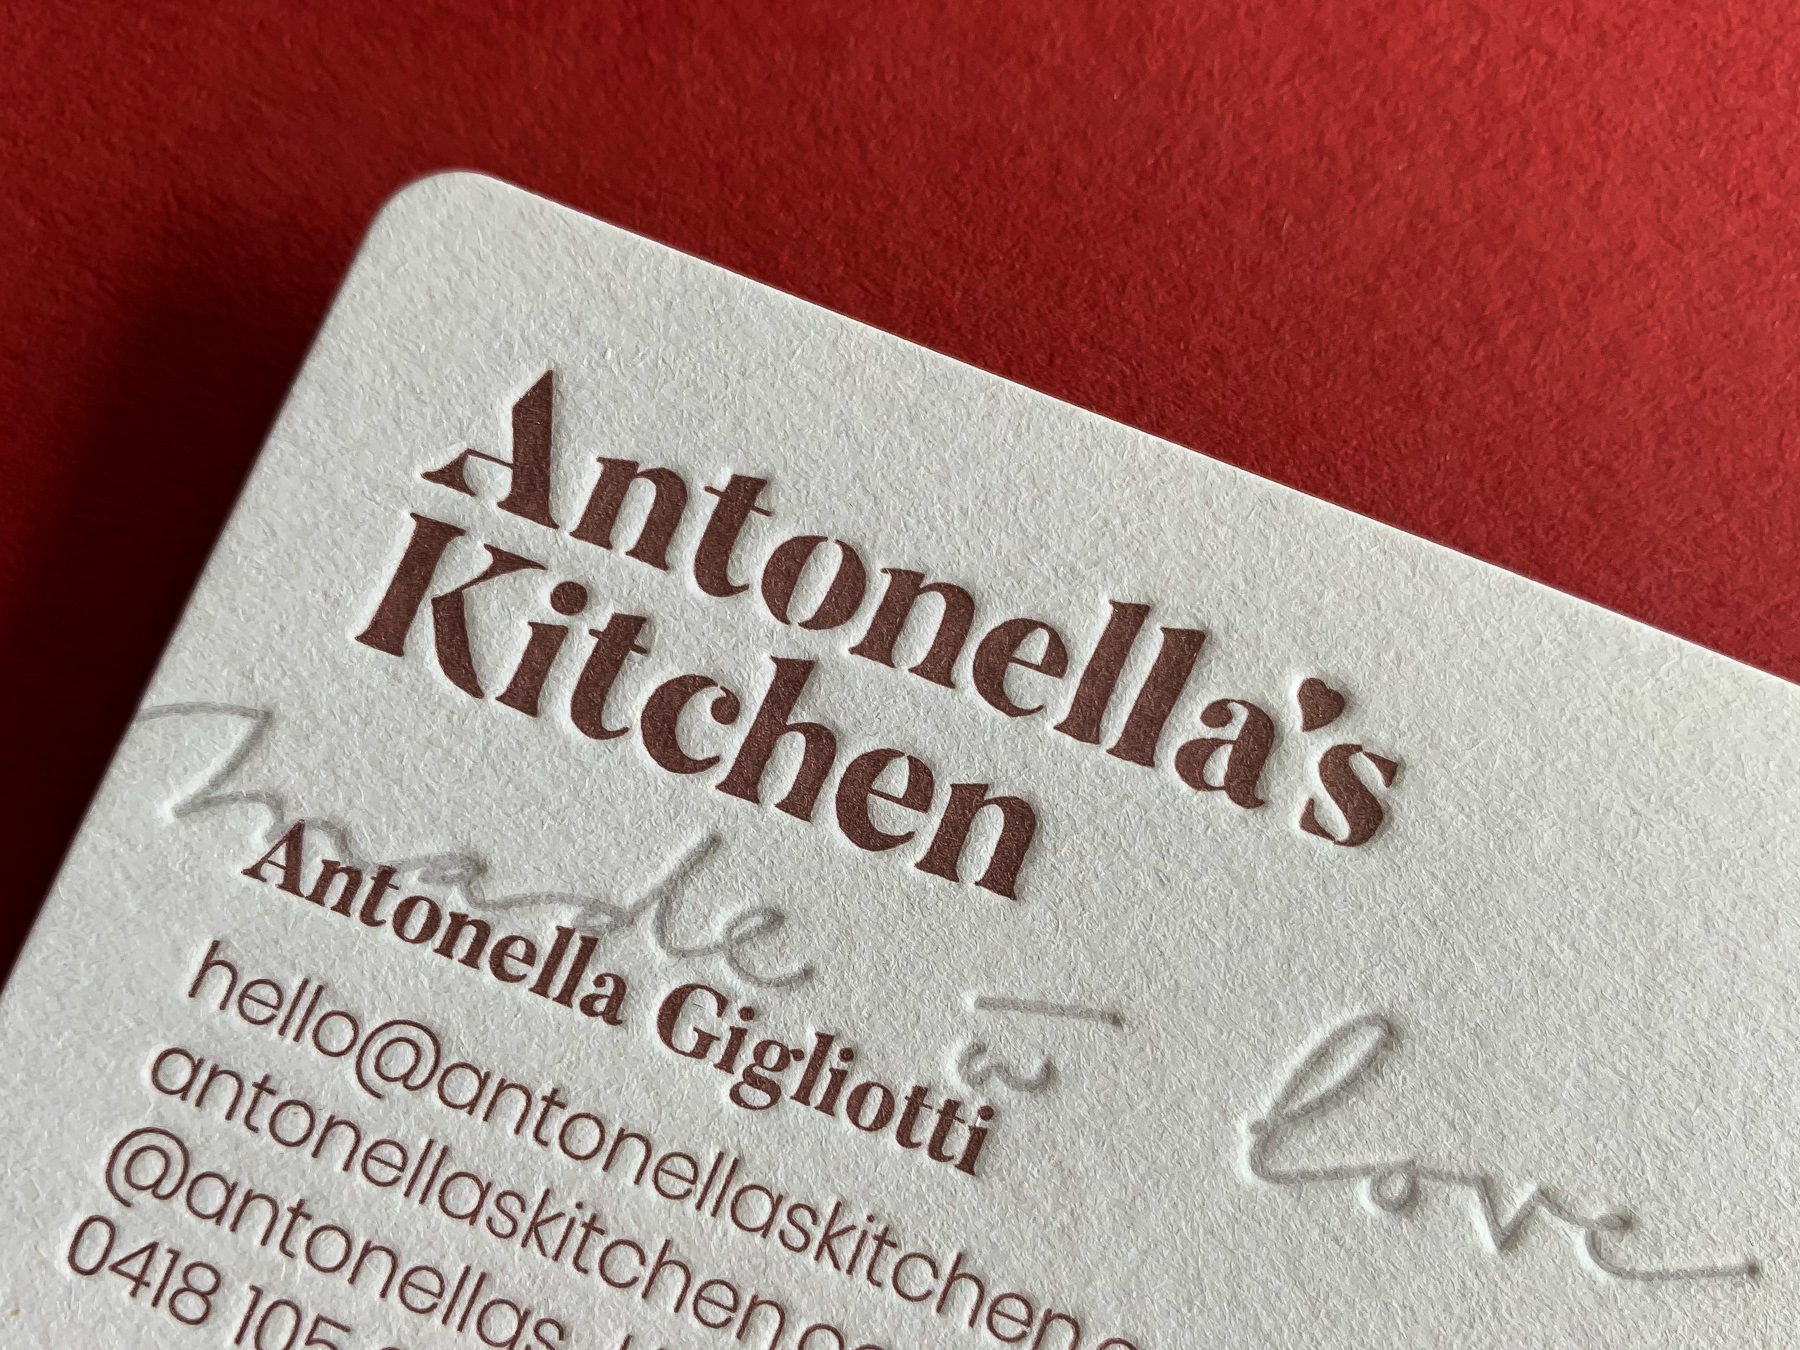 Custom letterpress business cards for Antonellas Kitchen on Stephen Gesso White-5